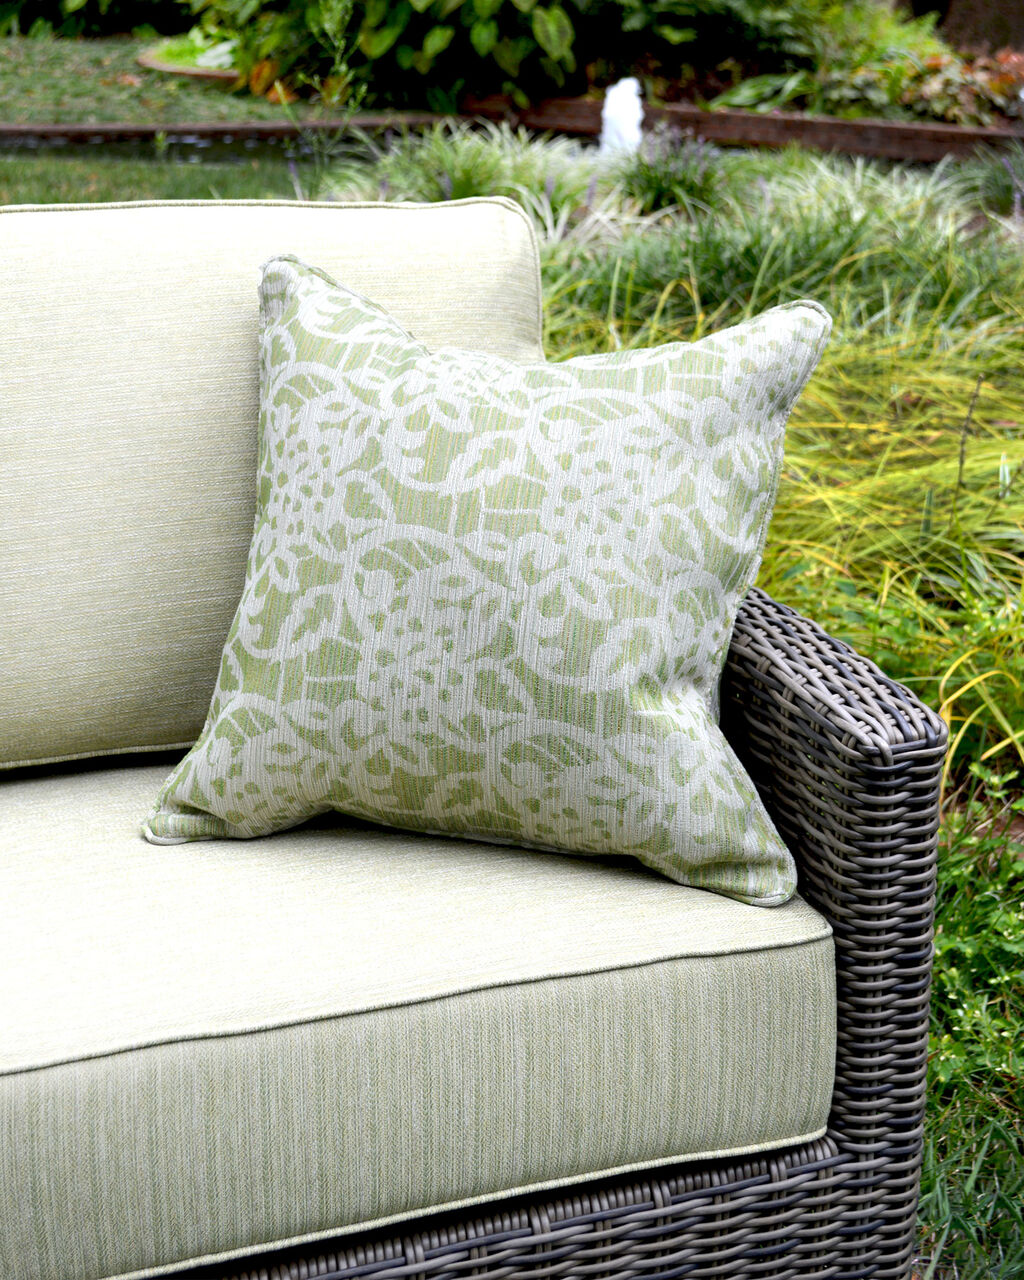 Durable outdoor cushions & pillows with Sunbrella fabric on woven loveseat